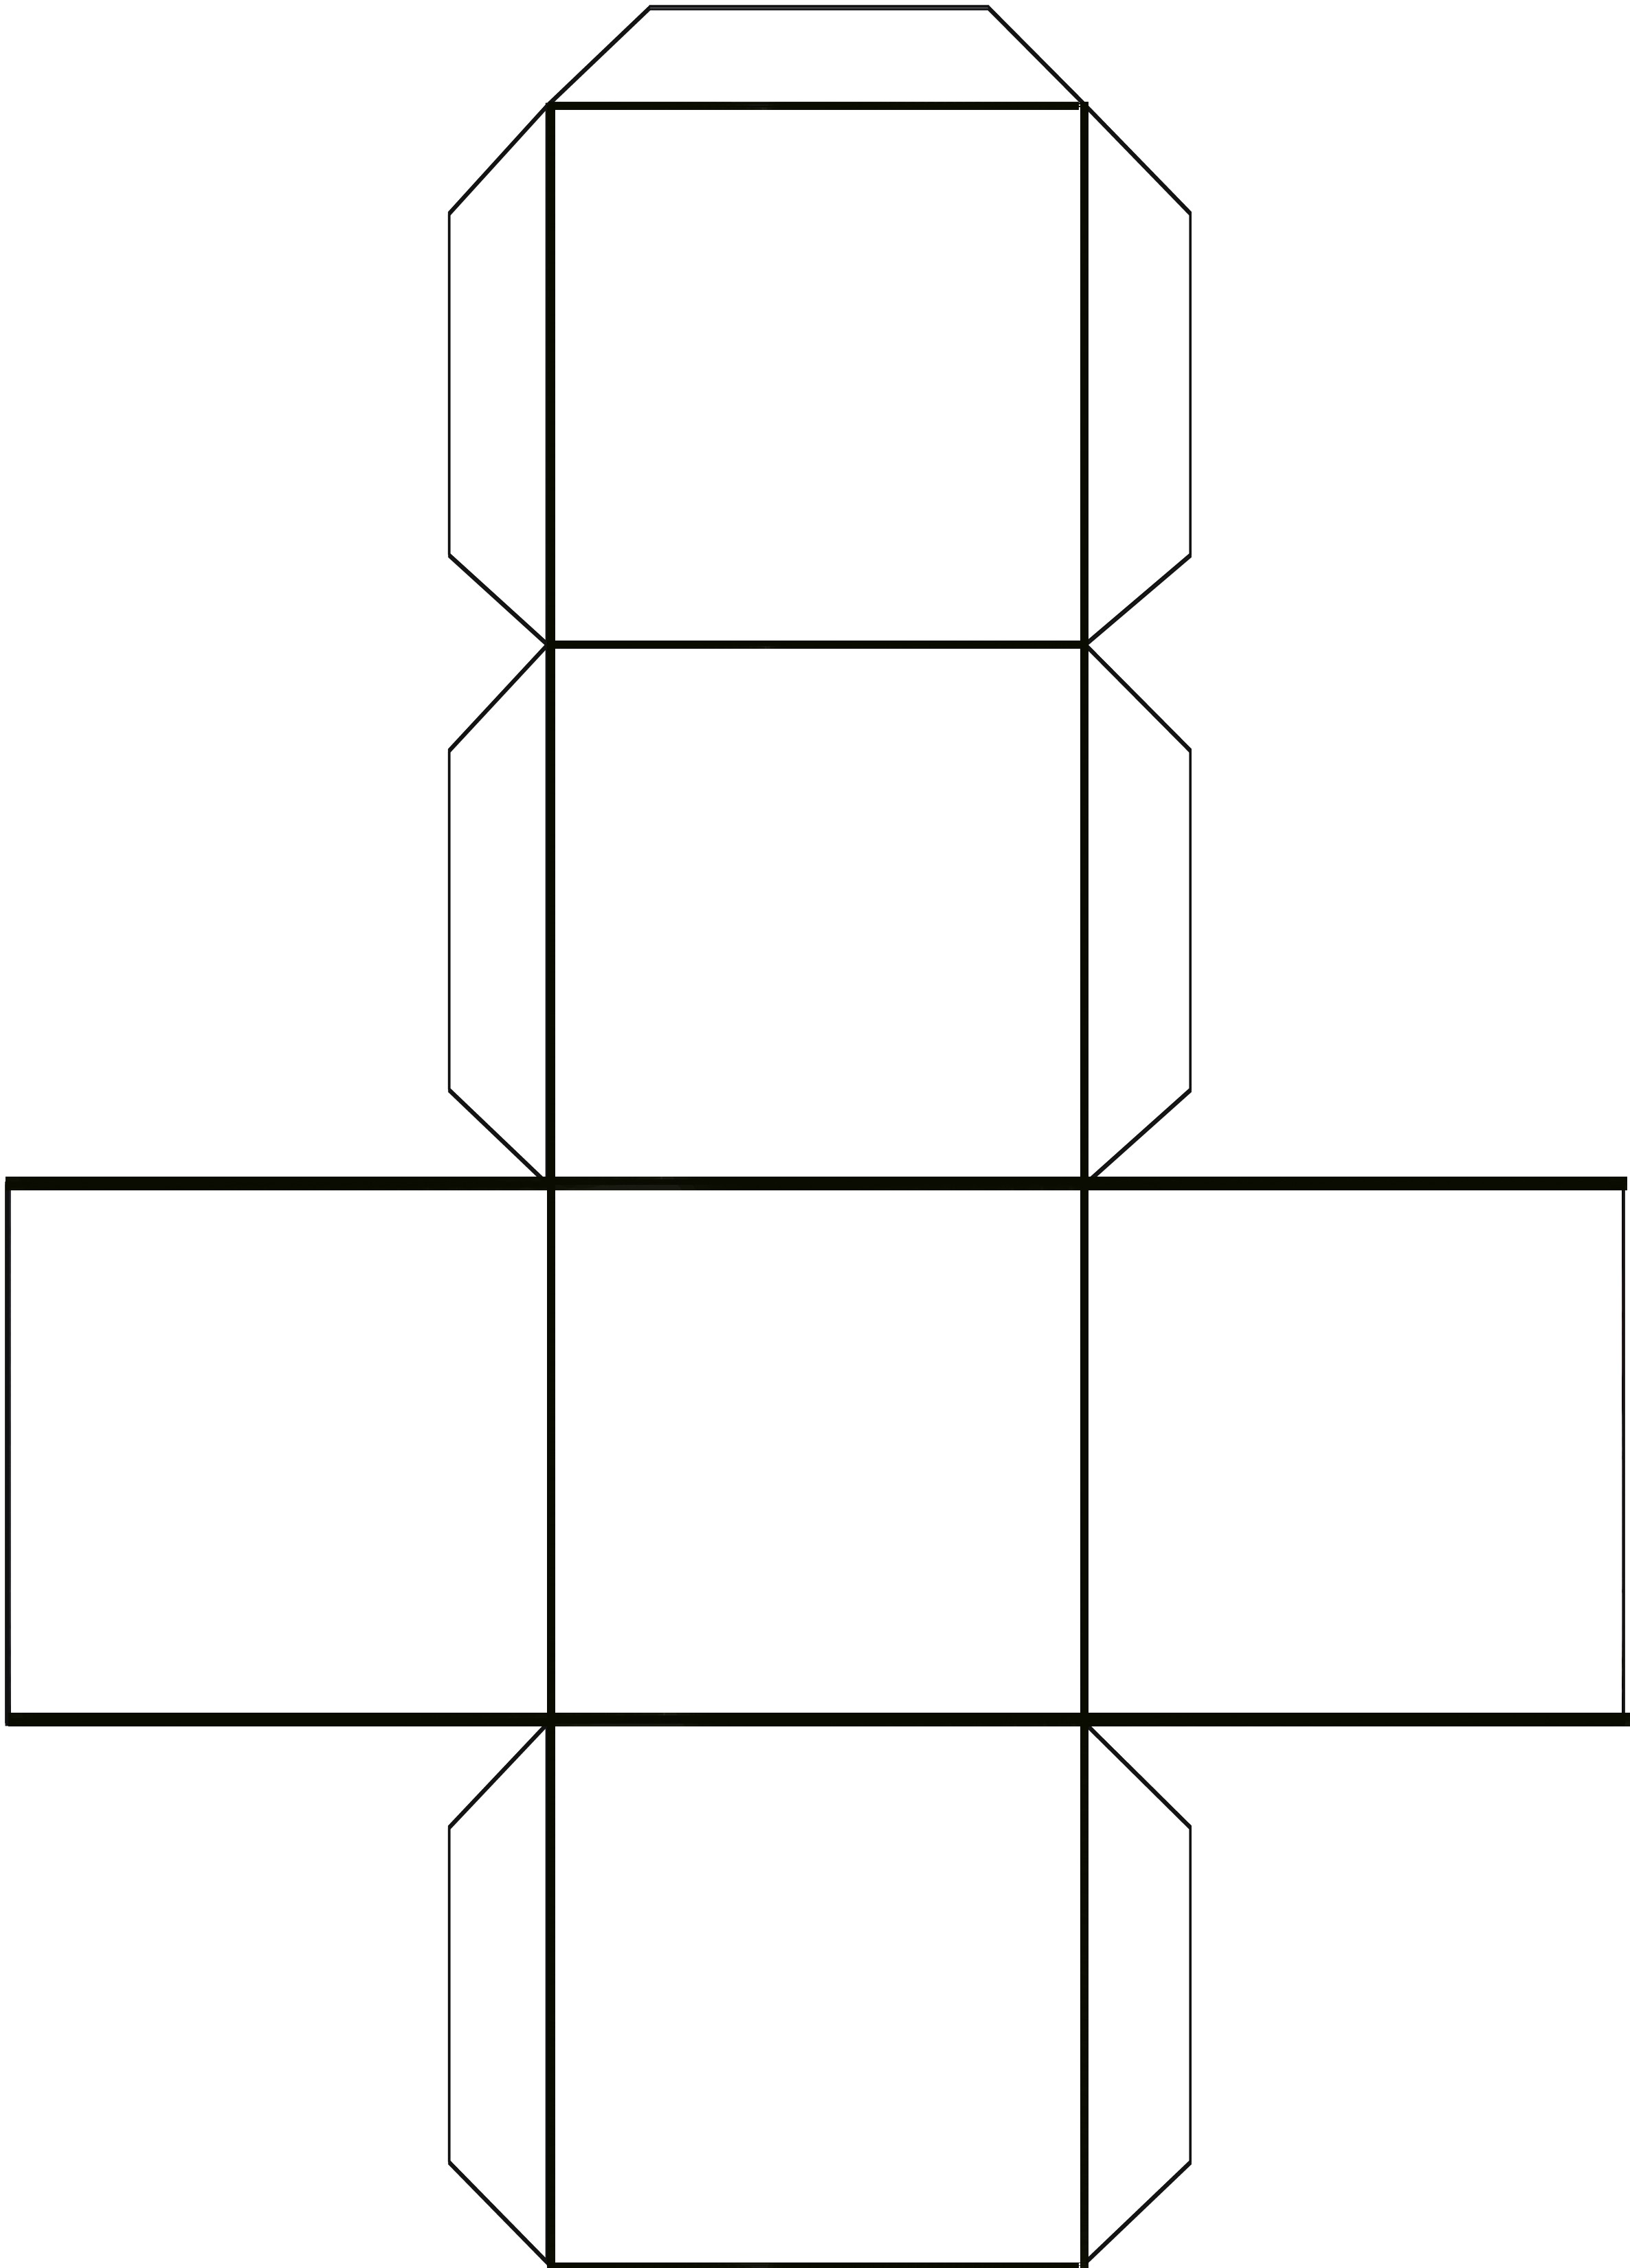 Pattern Printable Images Gallery Category Page 27